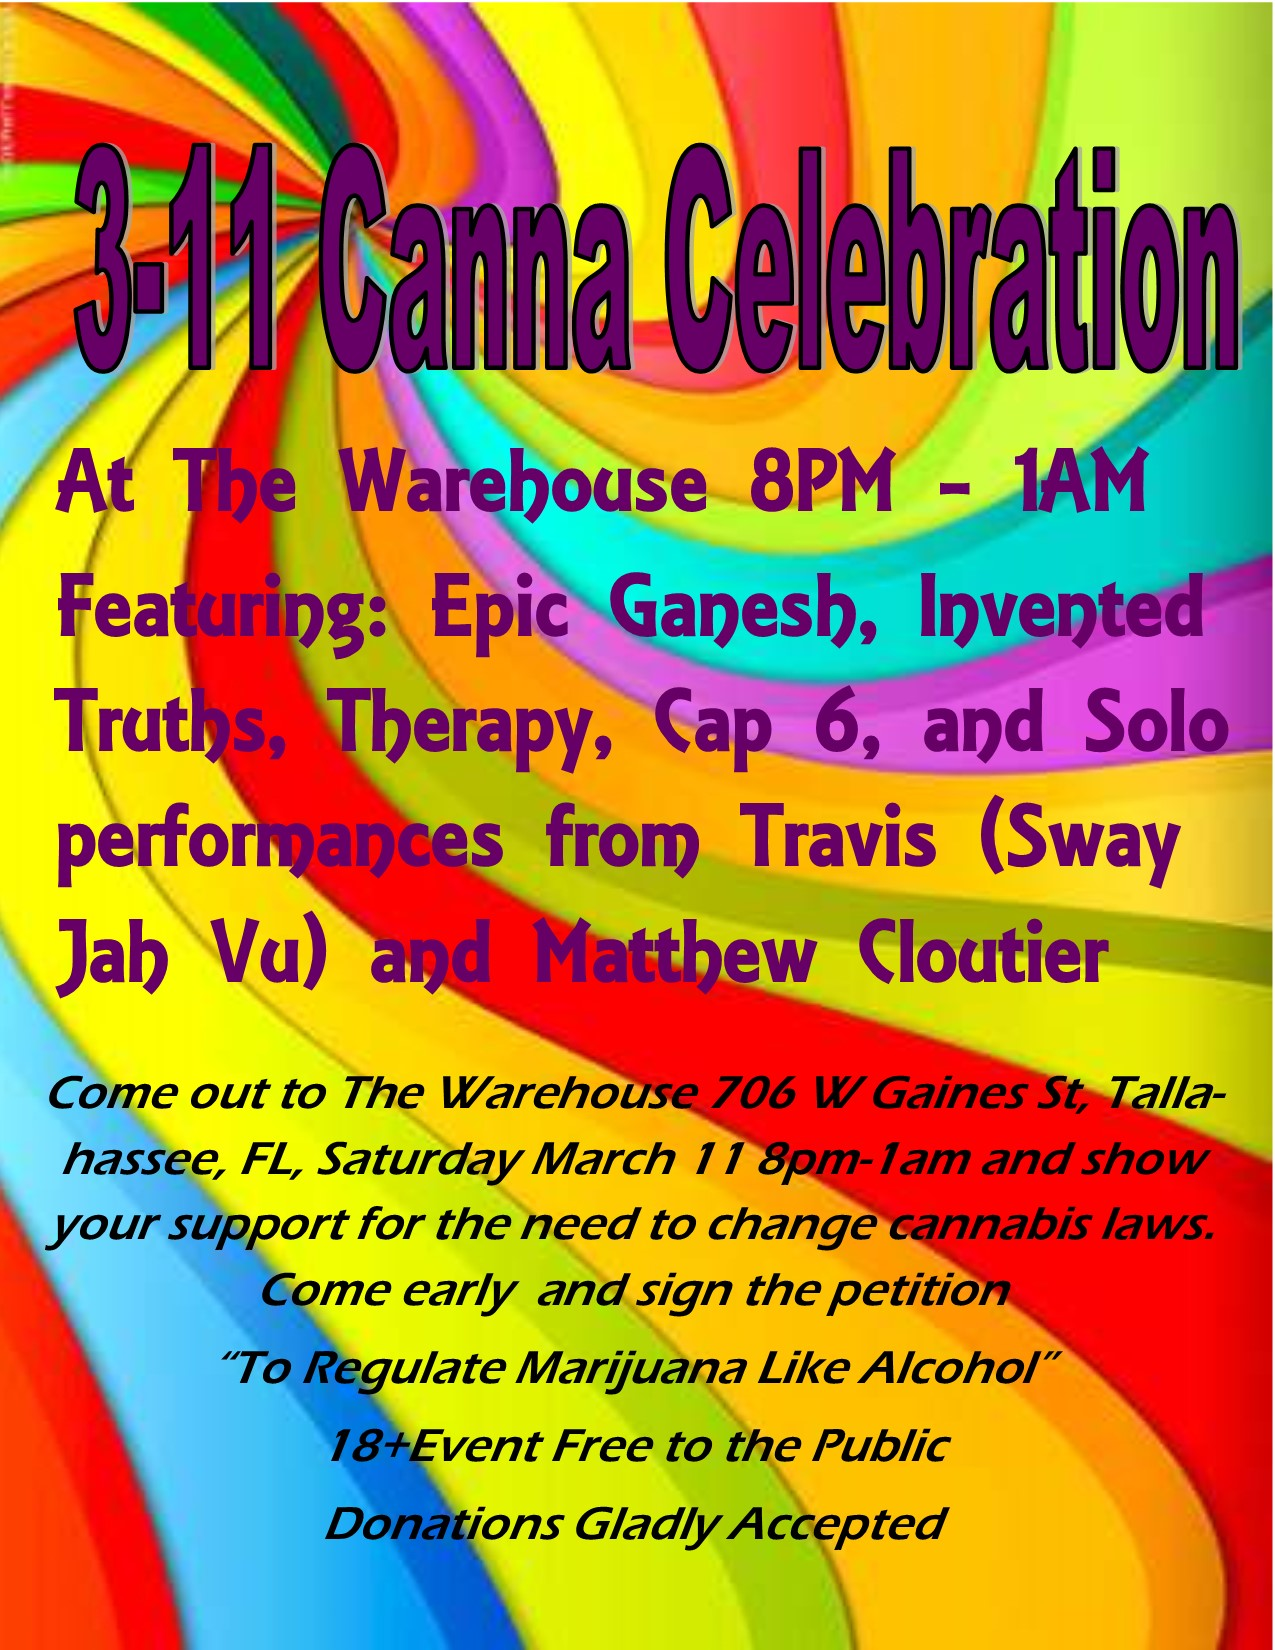 3-11 Canna Celebration.pub